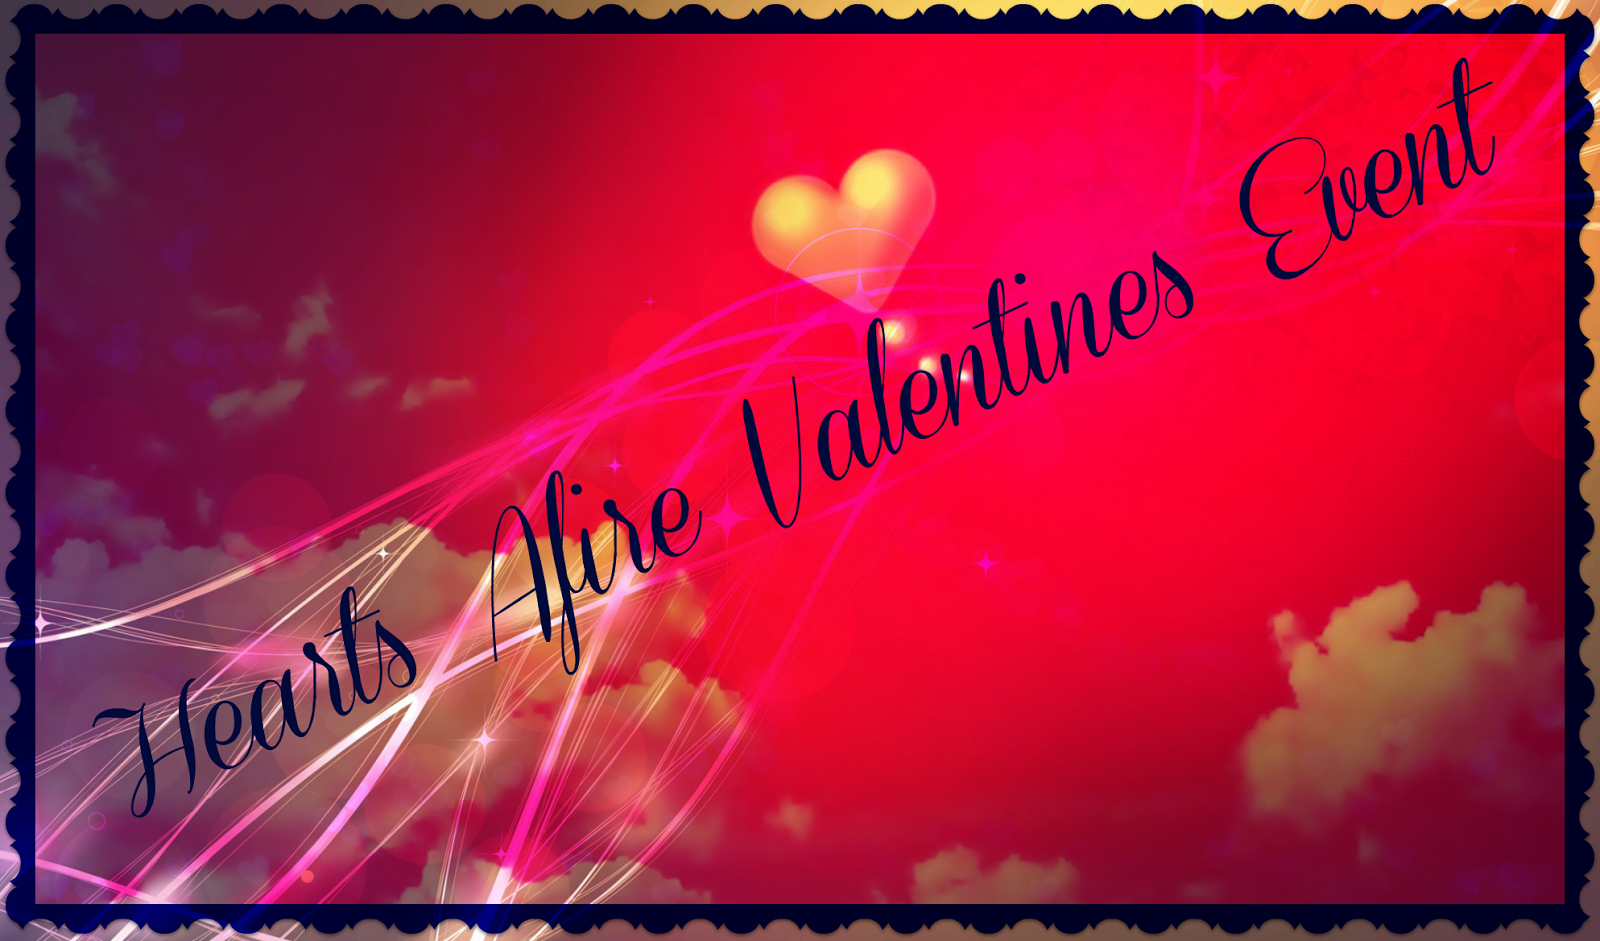 Sign up for the Valentine Event Blogger Opp US/Canada. Sign ups close 1/10.